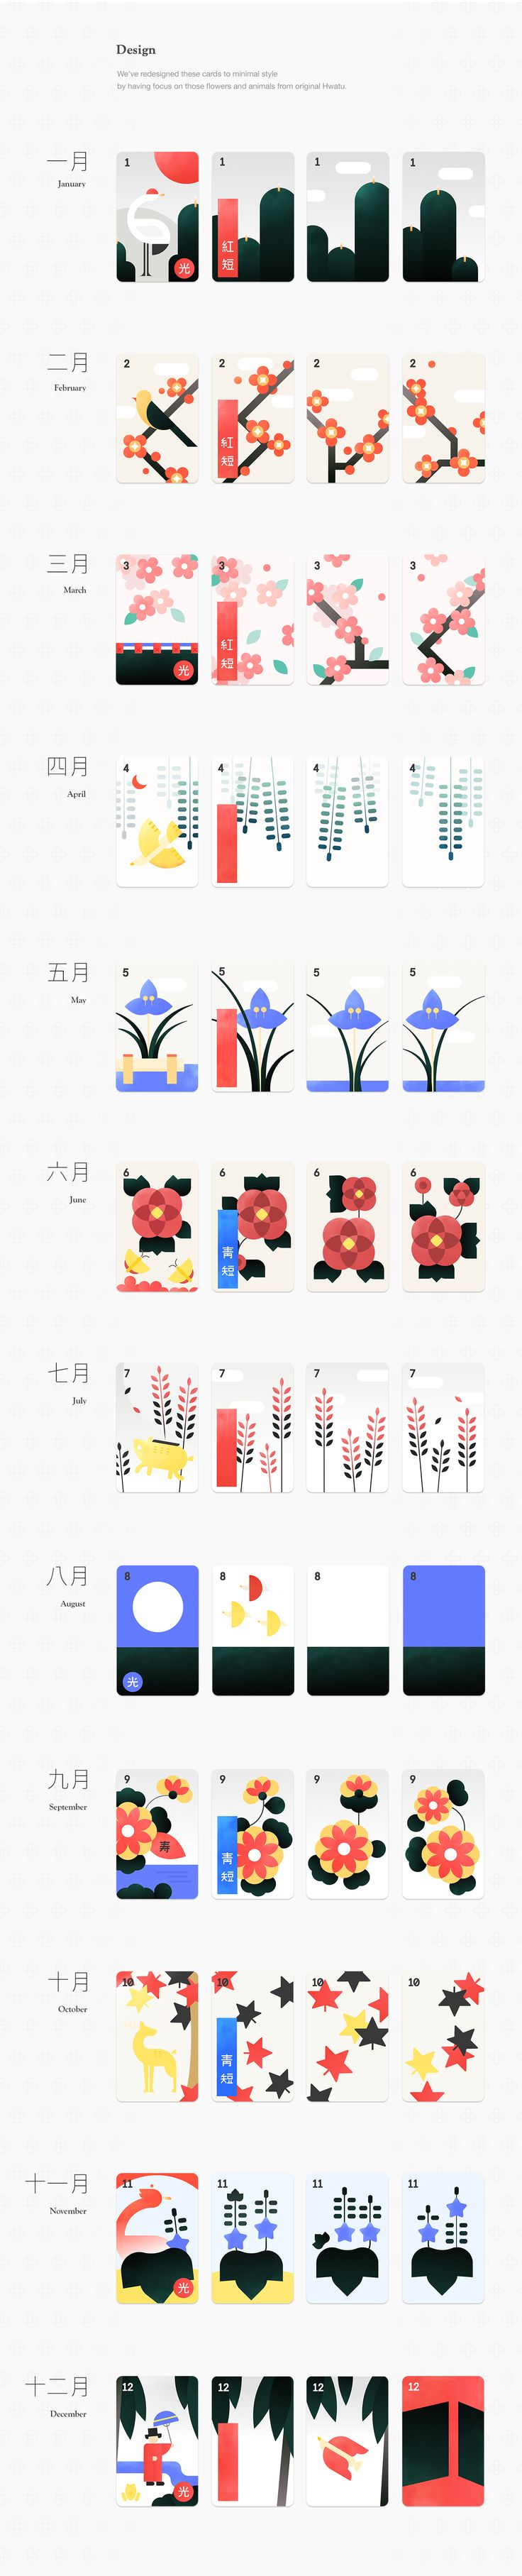 Hwatu is the most famous playing card set in Korea and Japan. We can often see…